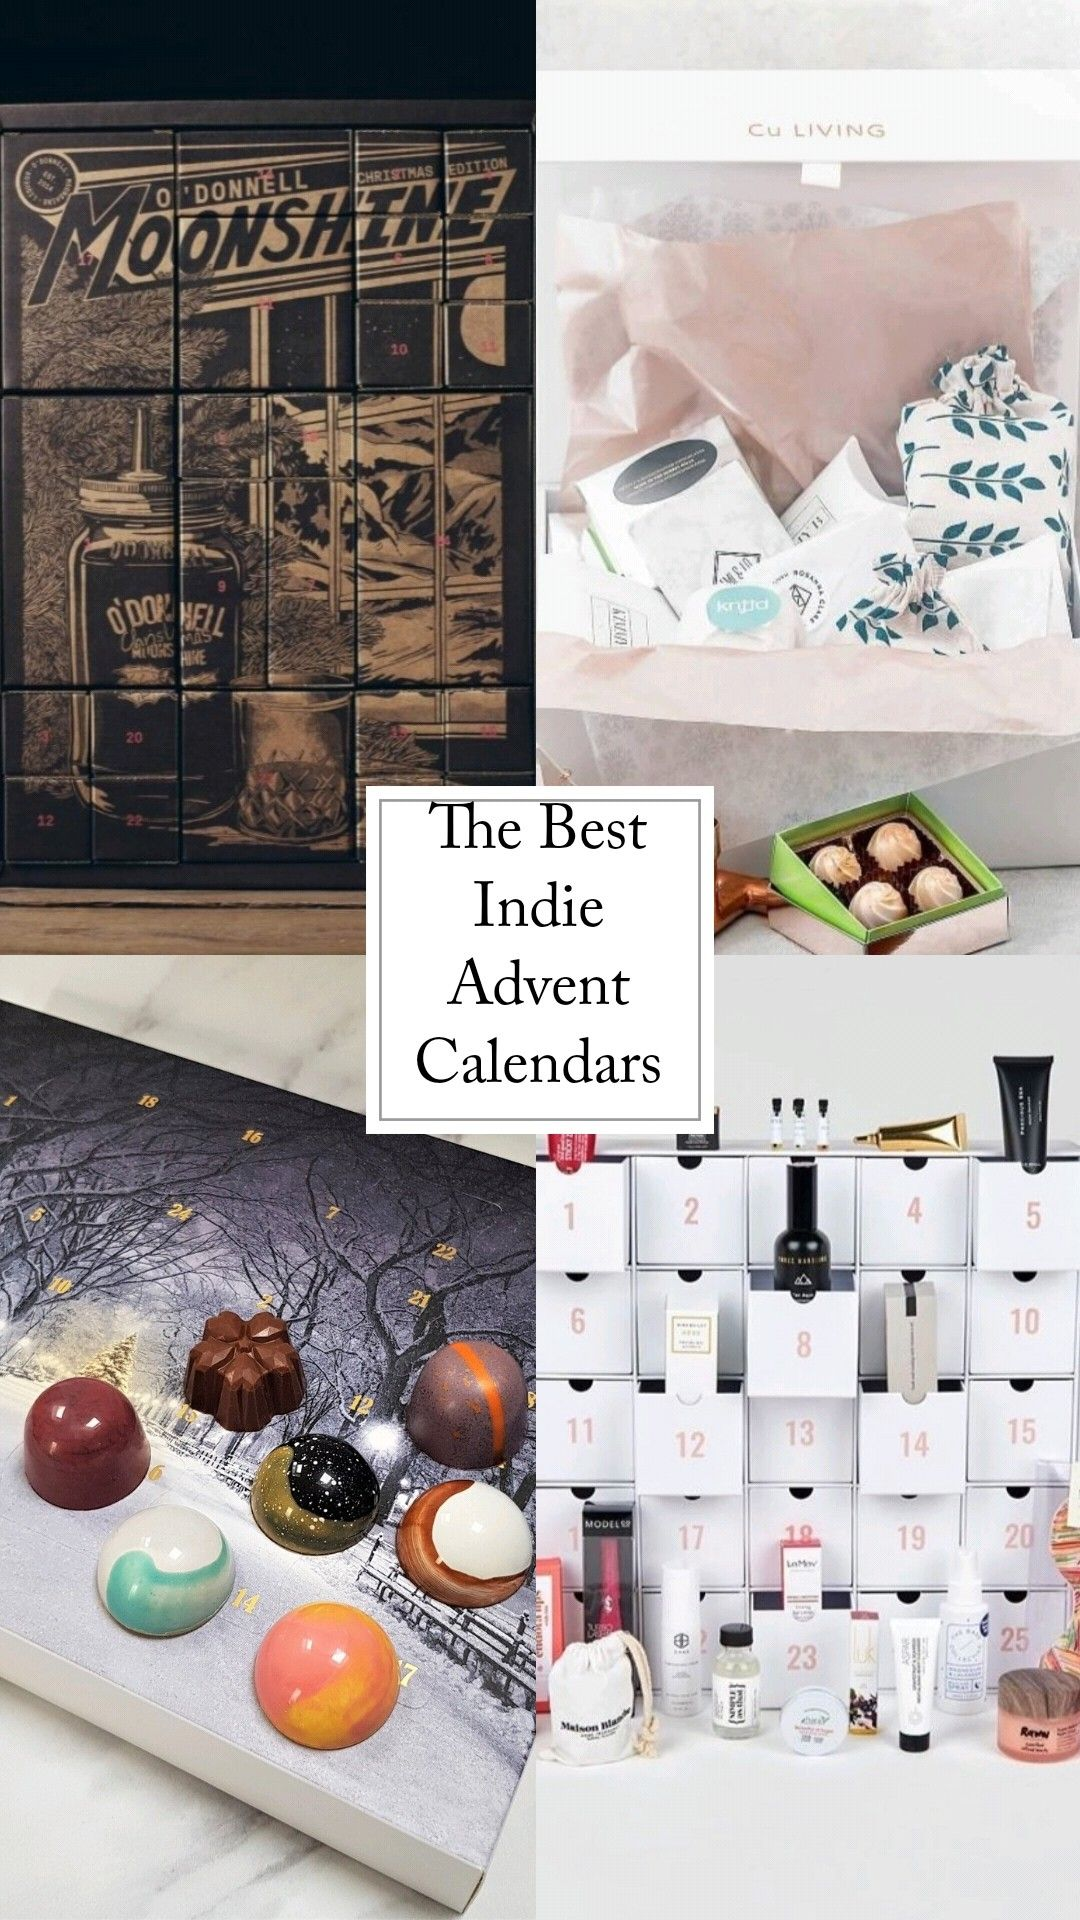 The Best Indie Advent Calendars 2020 Updated In 2020 Beauty Advent Calendar Christmas Spices Advent Calendar